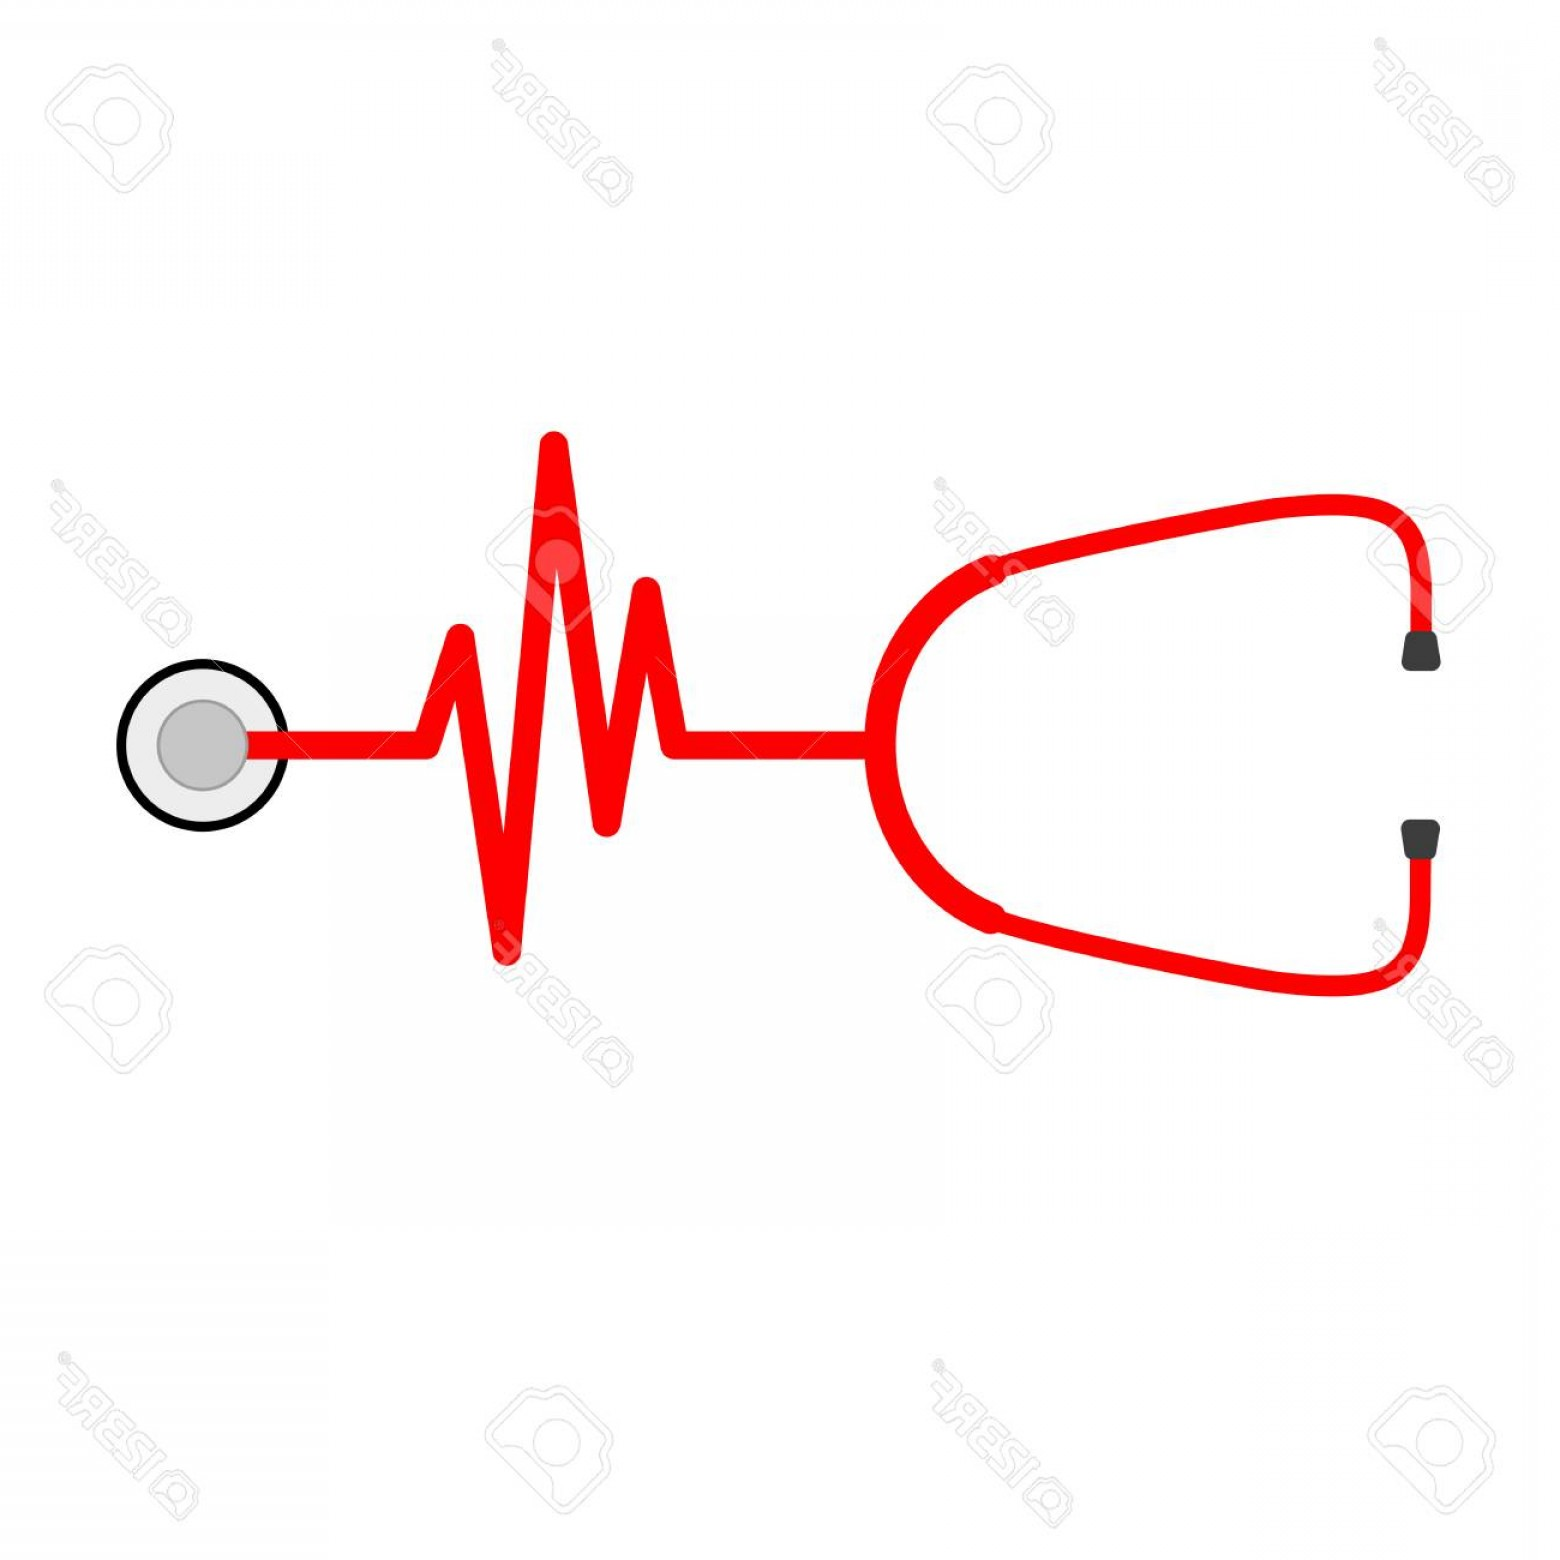 Heart Stethoscope With EKG Lines Vector: Photostock Vector Stethoscope In Shape Of Electrocardiogram Vector Illustration Stethoscope And Heartbeat Sign